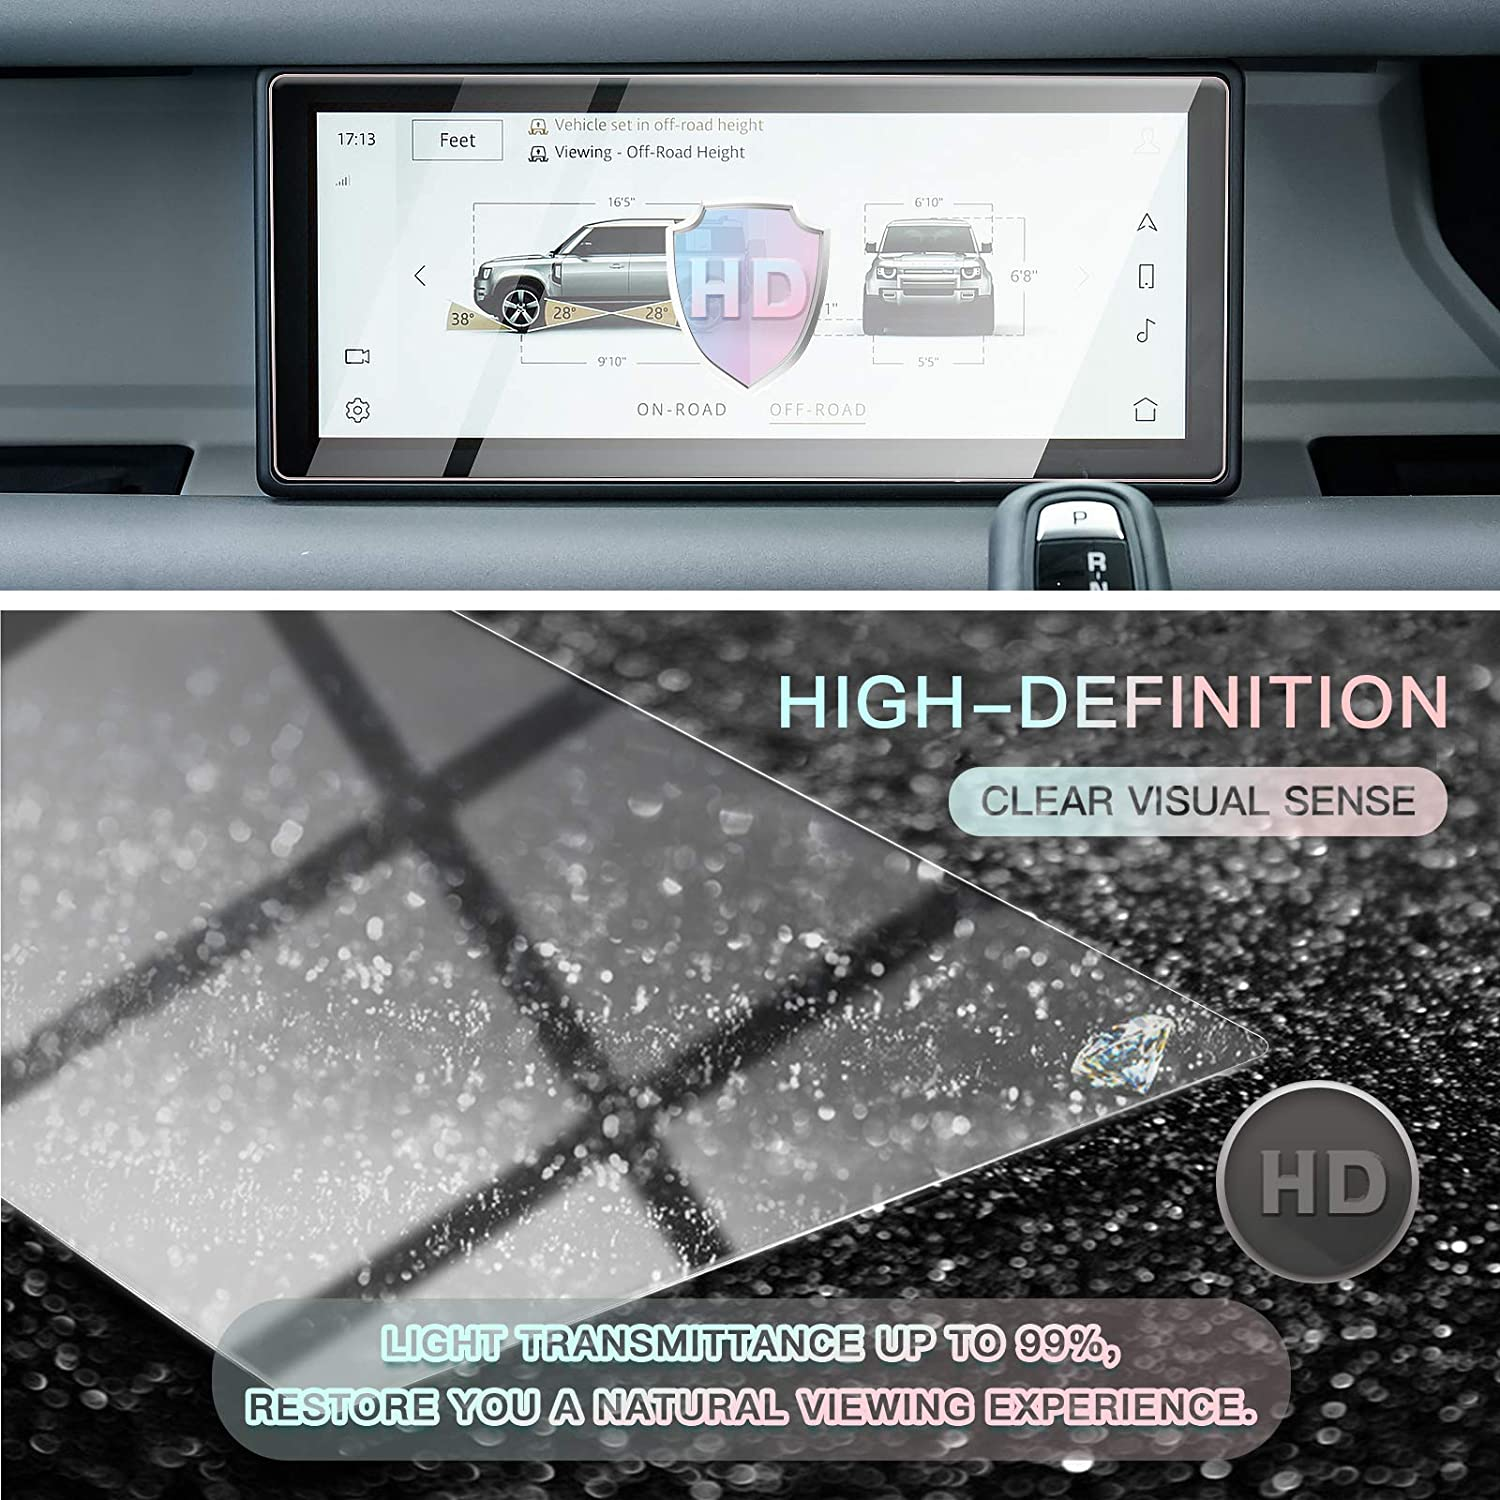 Screen Protector Foils for 2020 Land Rover Defender 90 110 10In Navigation Display Tempered Glass 9H Hardness Anti Scratch /& Glare HD Clear LCD GPS Touch Screen Protective Film